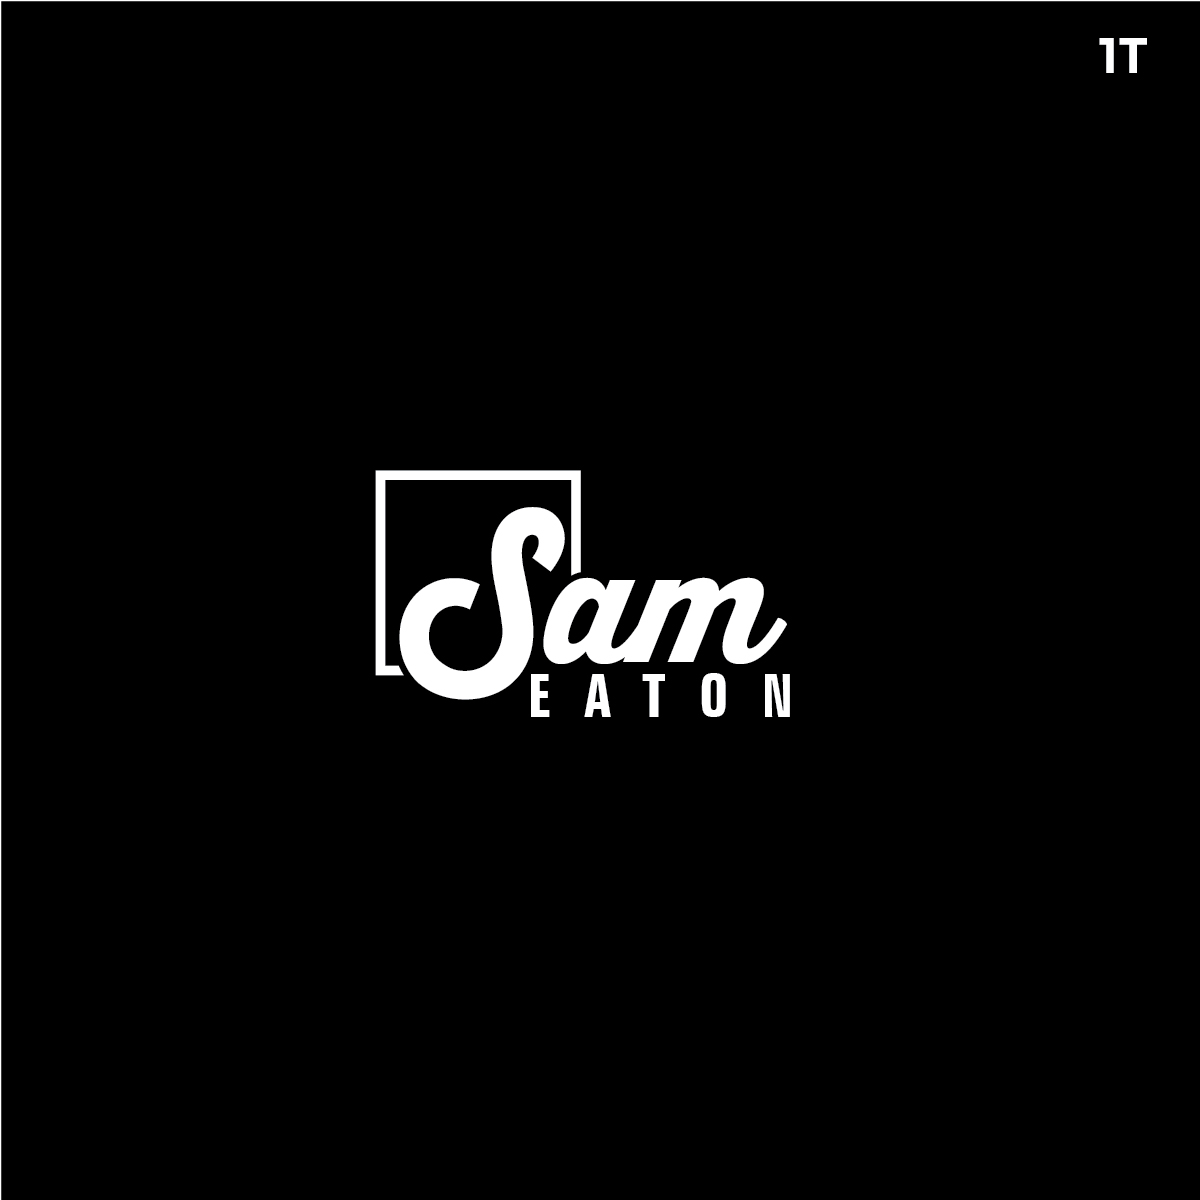 Traditional Upmarket Clothing Logo Design For Sam Eaton Please Keep The Name Separate From The Logo By Esolbiz Design 17644410